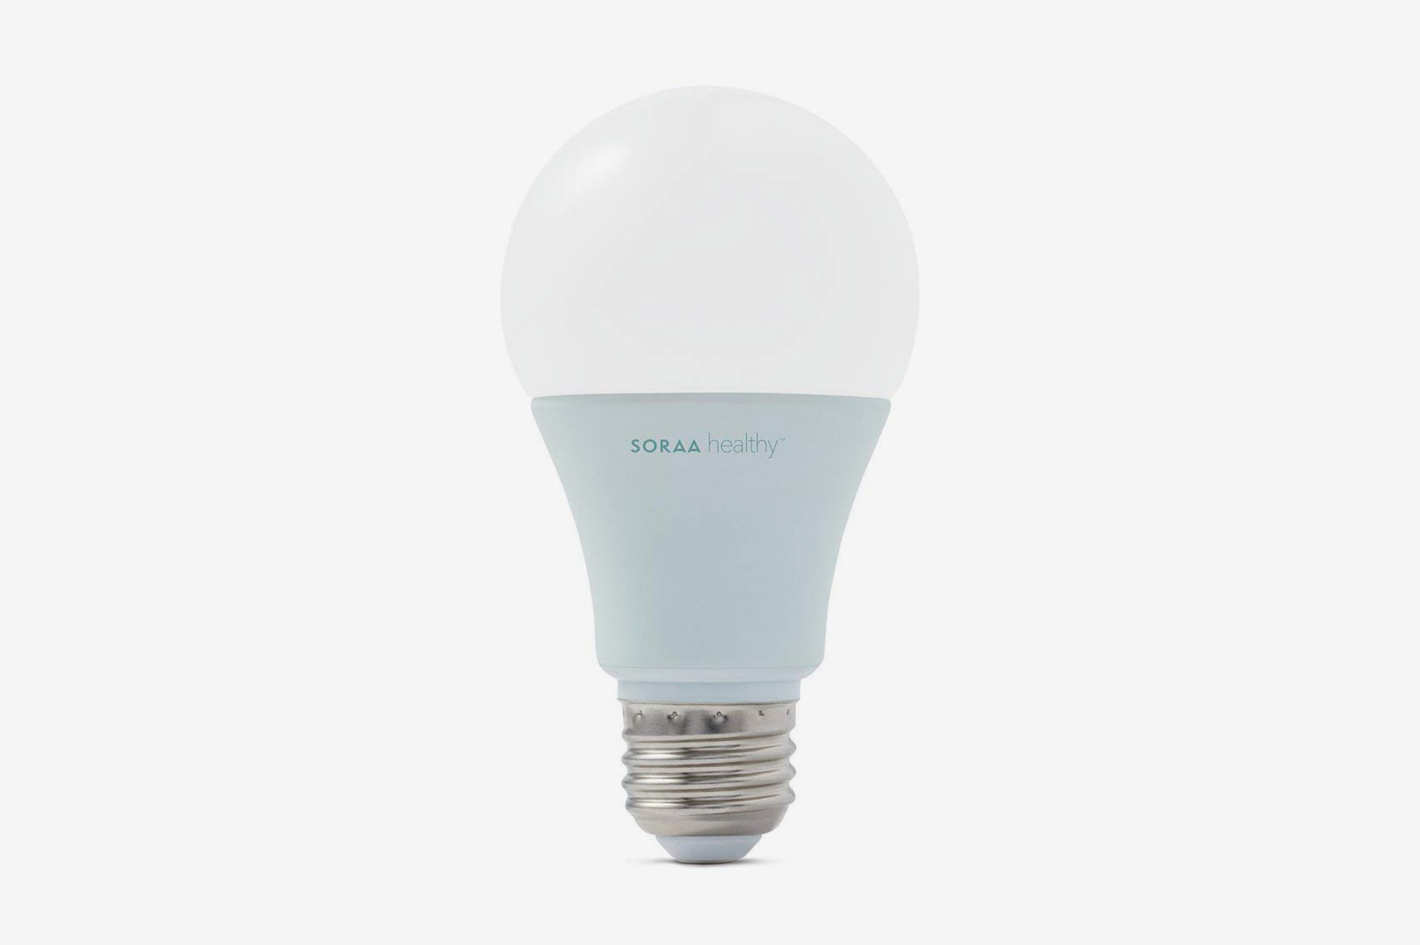 Lamp Bulb Soraa Healthy A19 Led Dimmable 600 Lumen Soft White